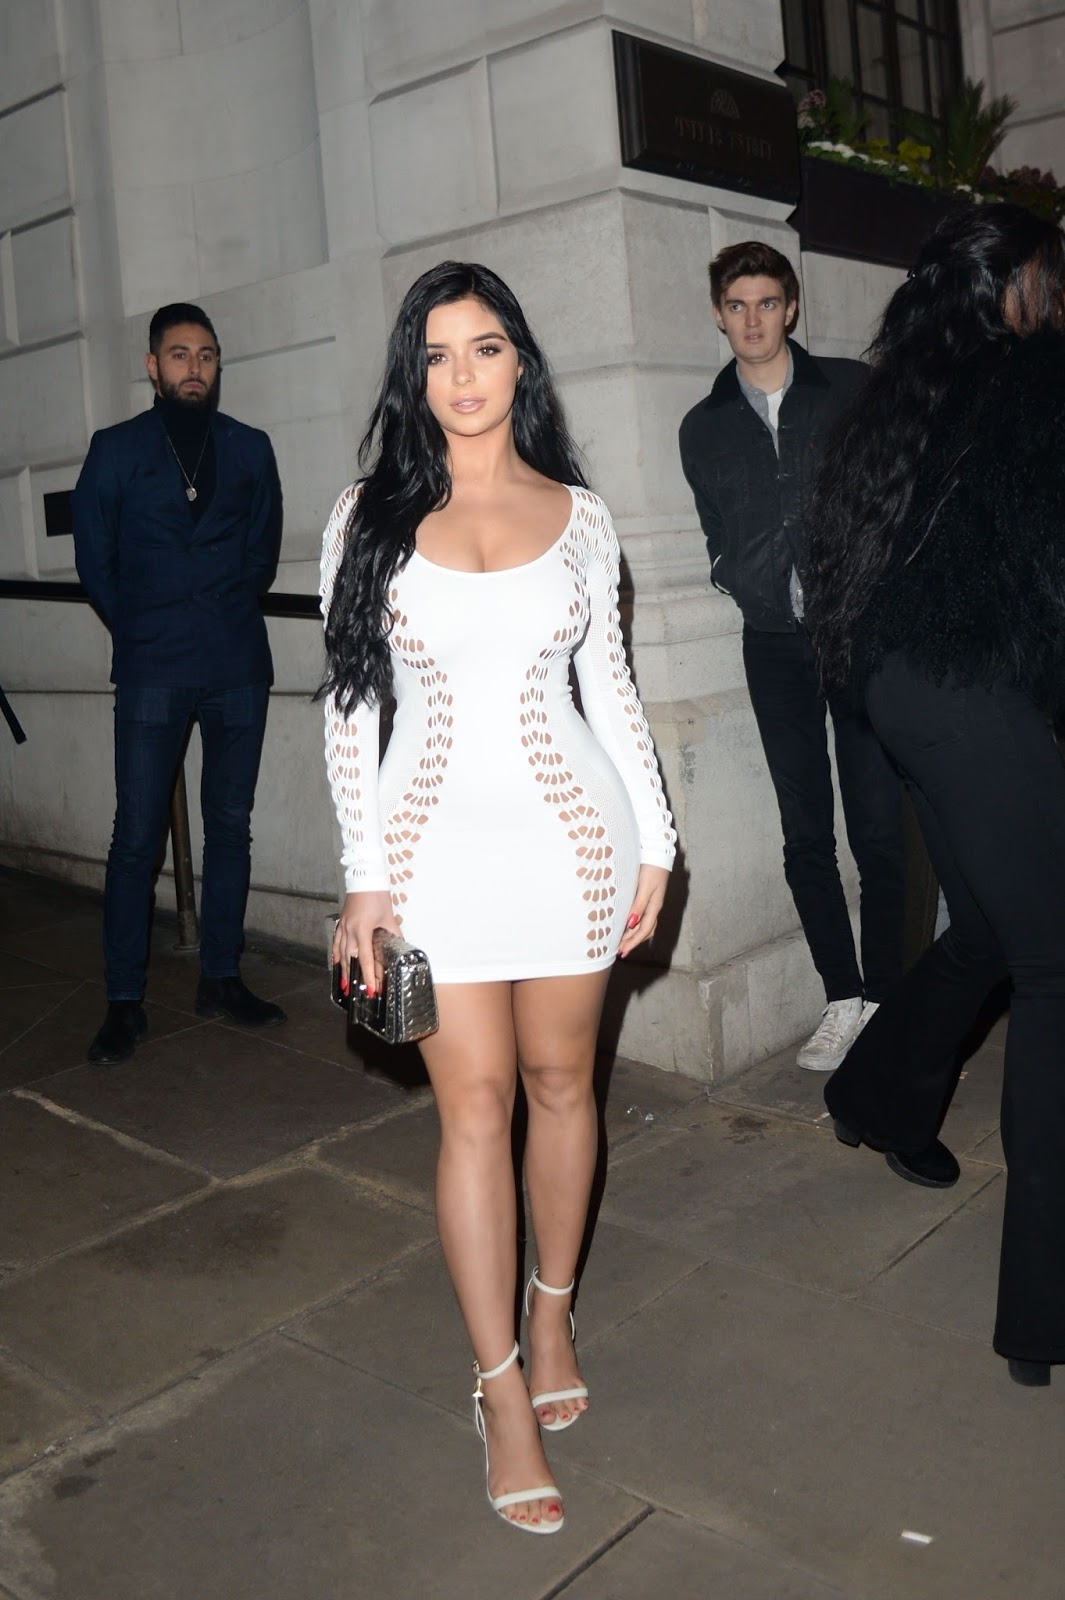 The dress revealed her killer legs and impressive cleavage